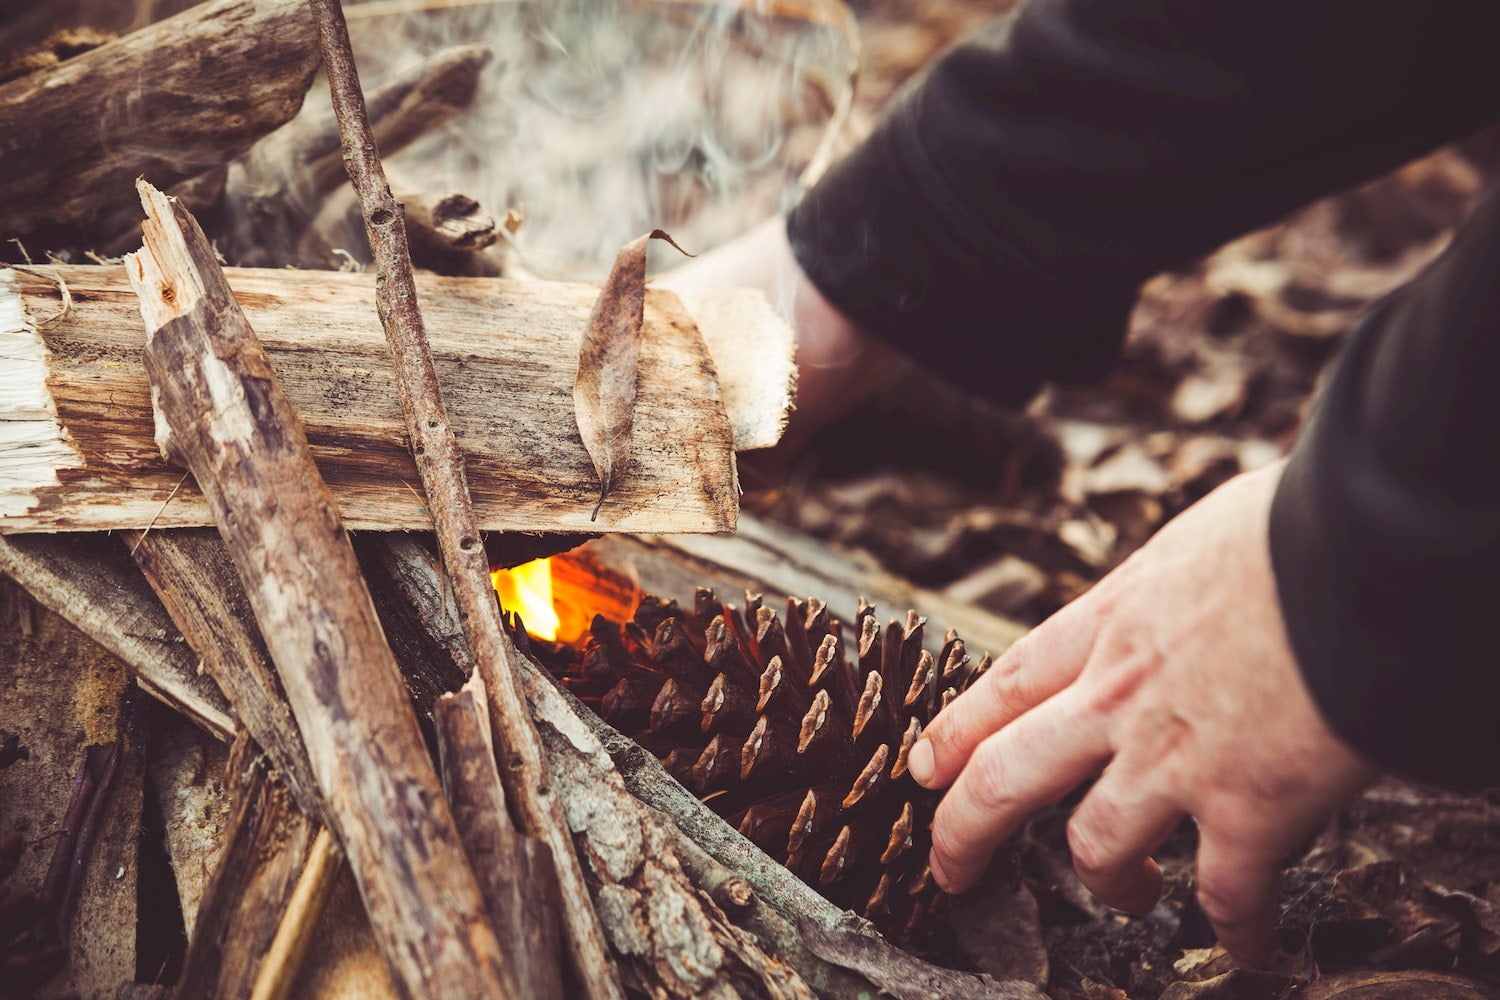 hands starting fire with a pinecone